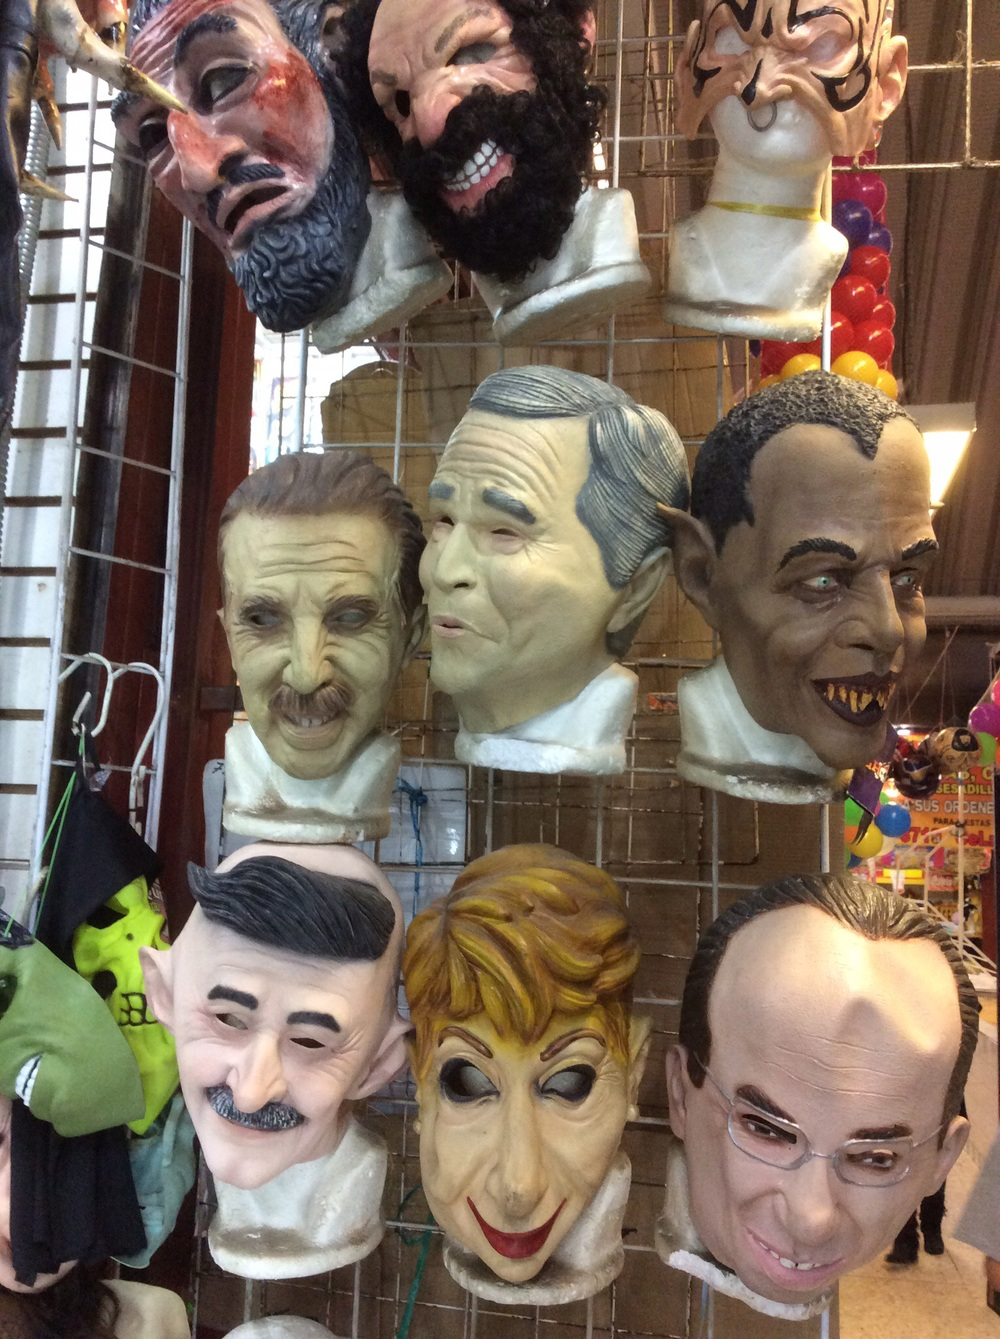 Scary political figures.